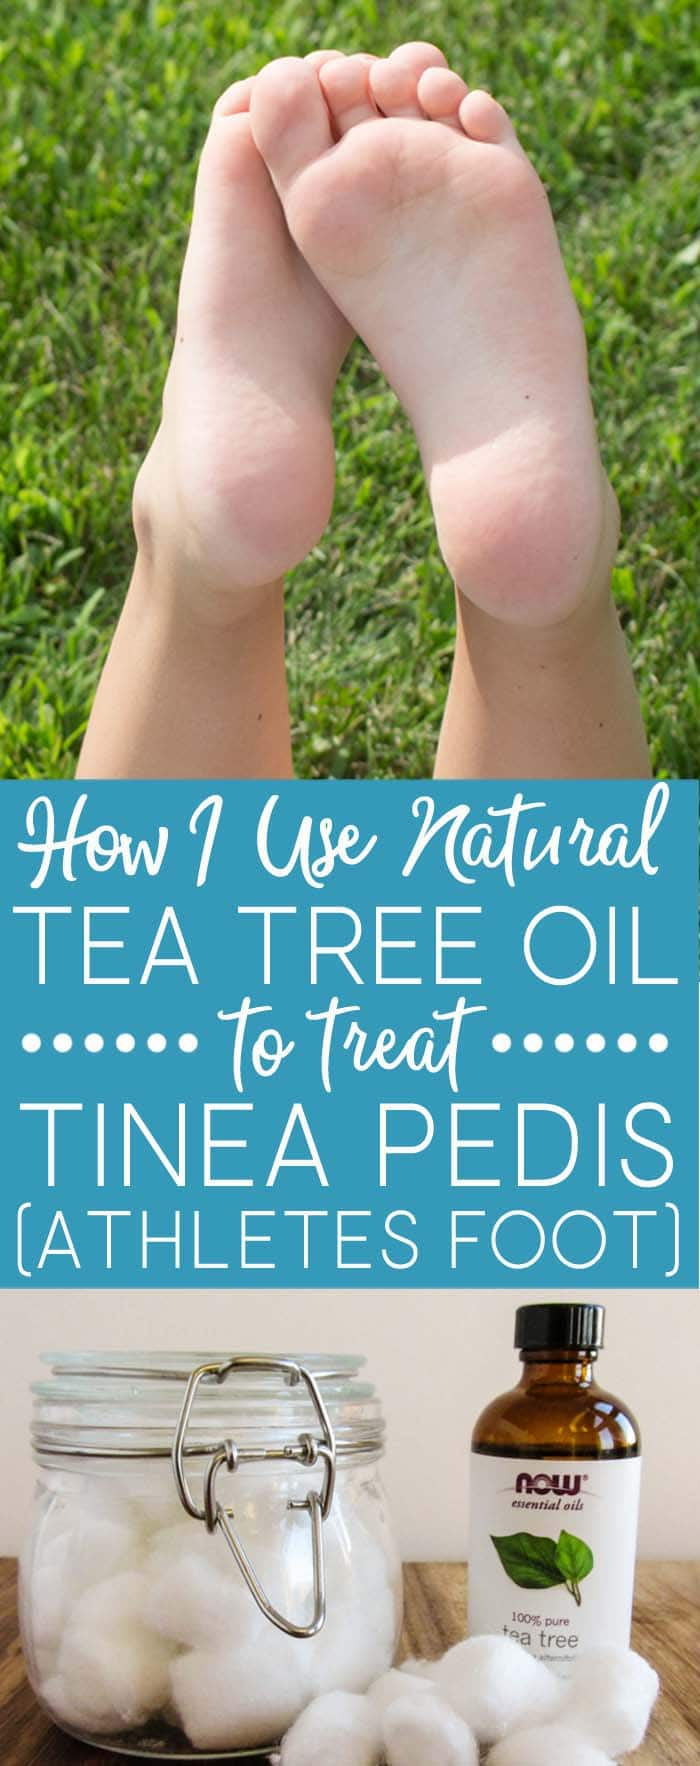 Learn how I successfully use tea tree oil to treat tinea pedis (athletes foot) instead of over-the-counter products. The fungus is gone in DAYS!